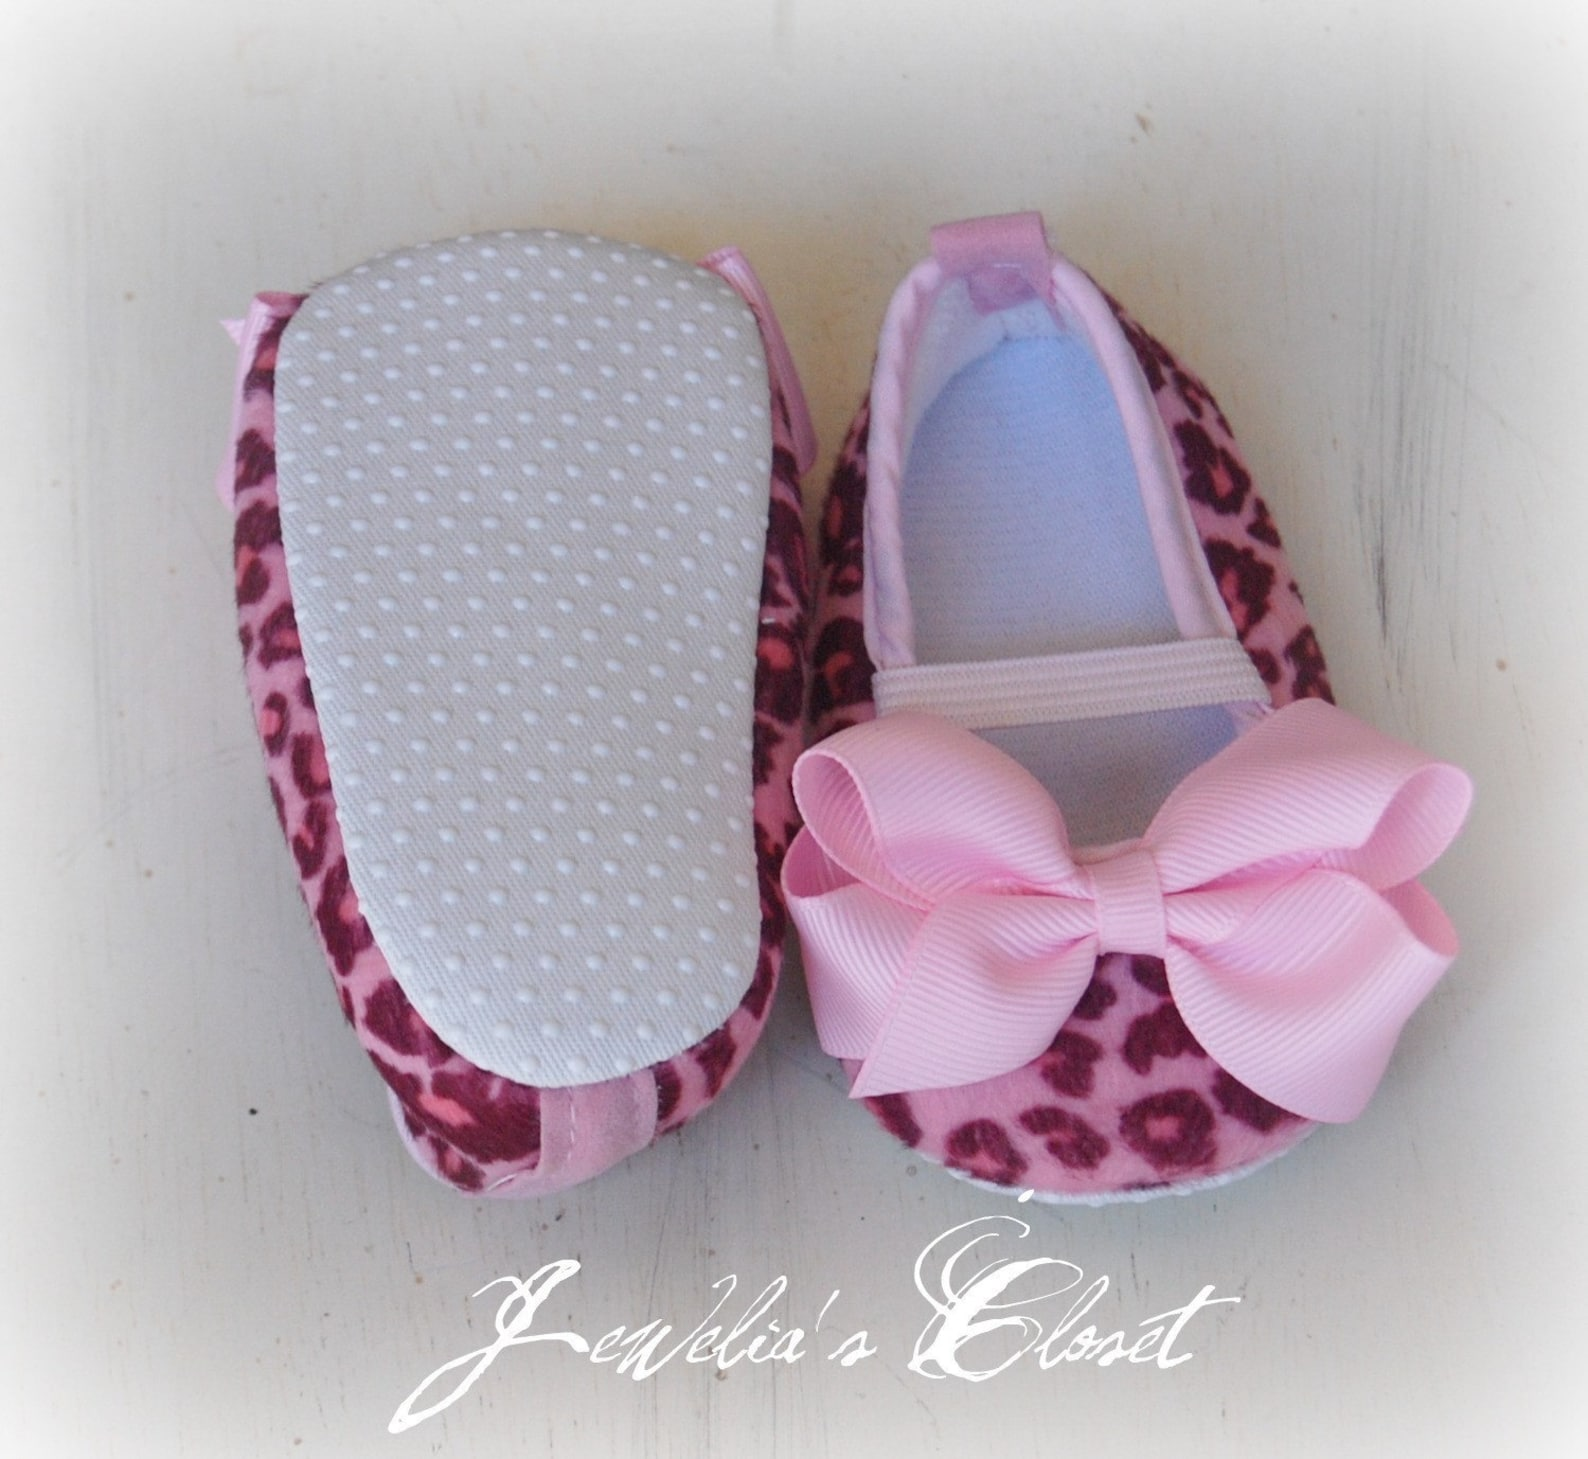 pink cheetah print baby shoes ballet flats with pink grosgrain bows- makes a great baby shower gift